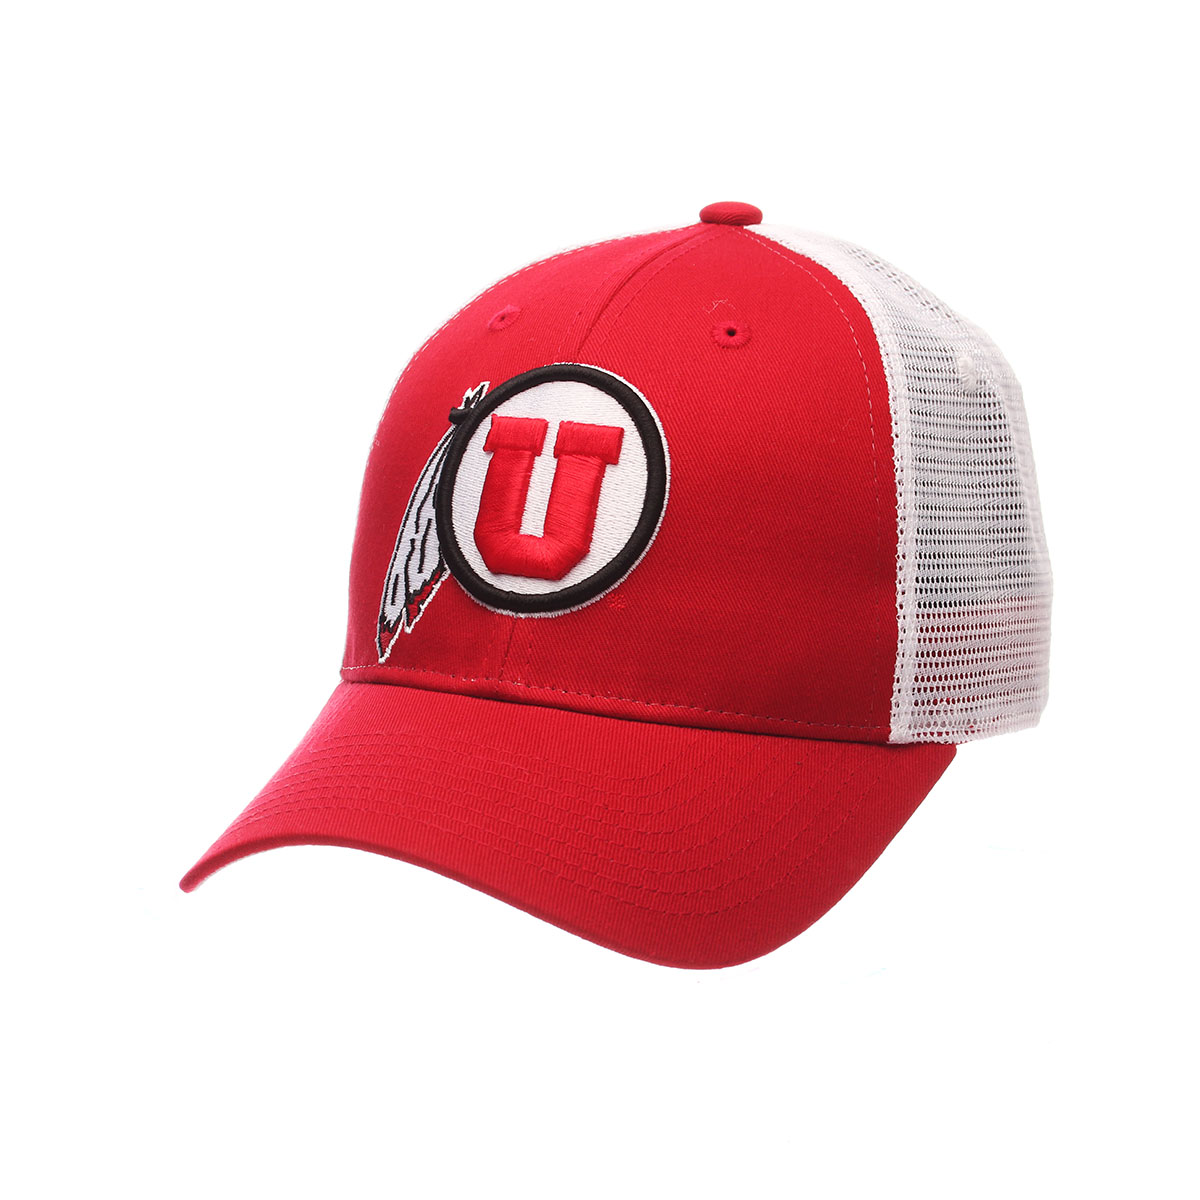 Utah Utes Big Rig Adjustable Hat (Red)